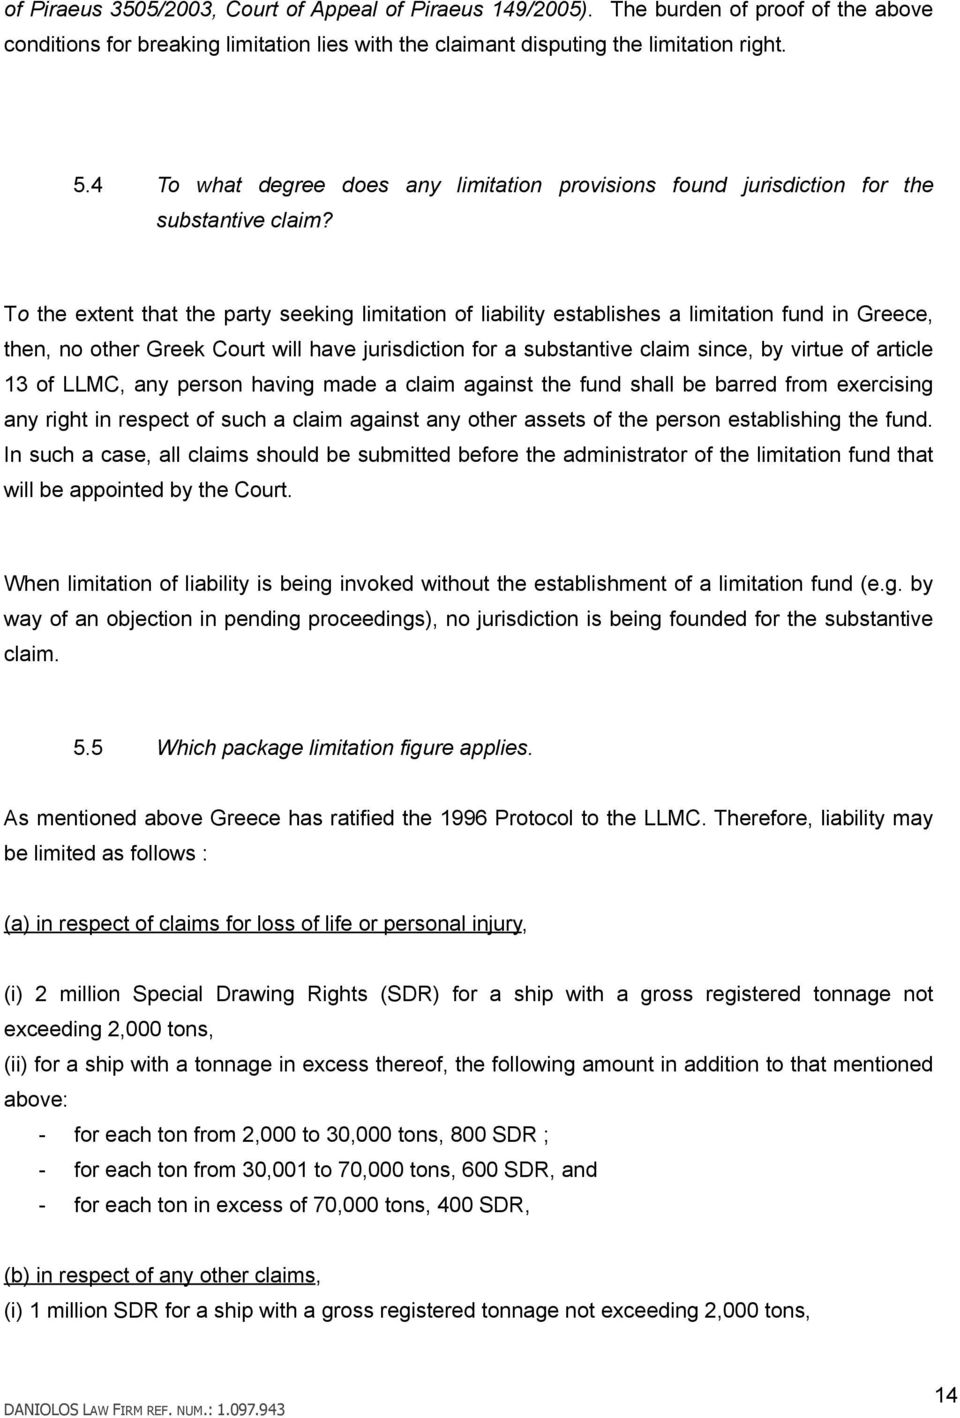 To the extent that the party seeking limitation of liability establishes a limitation fund in Greece, then, no other Greek Court will have jurisdiction for a substantive claim since, by virtue of